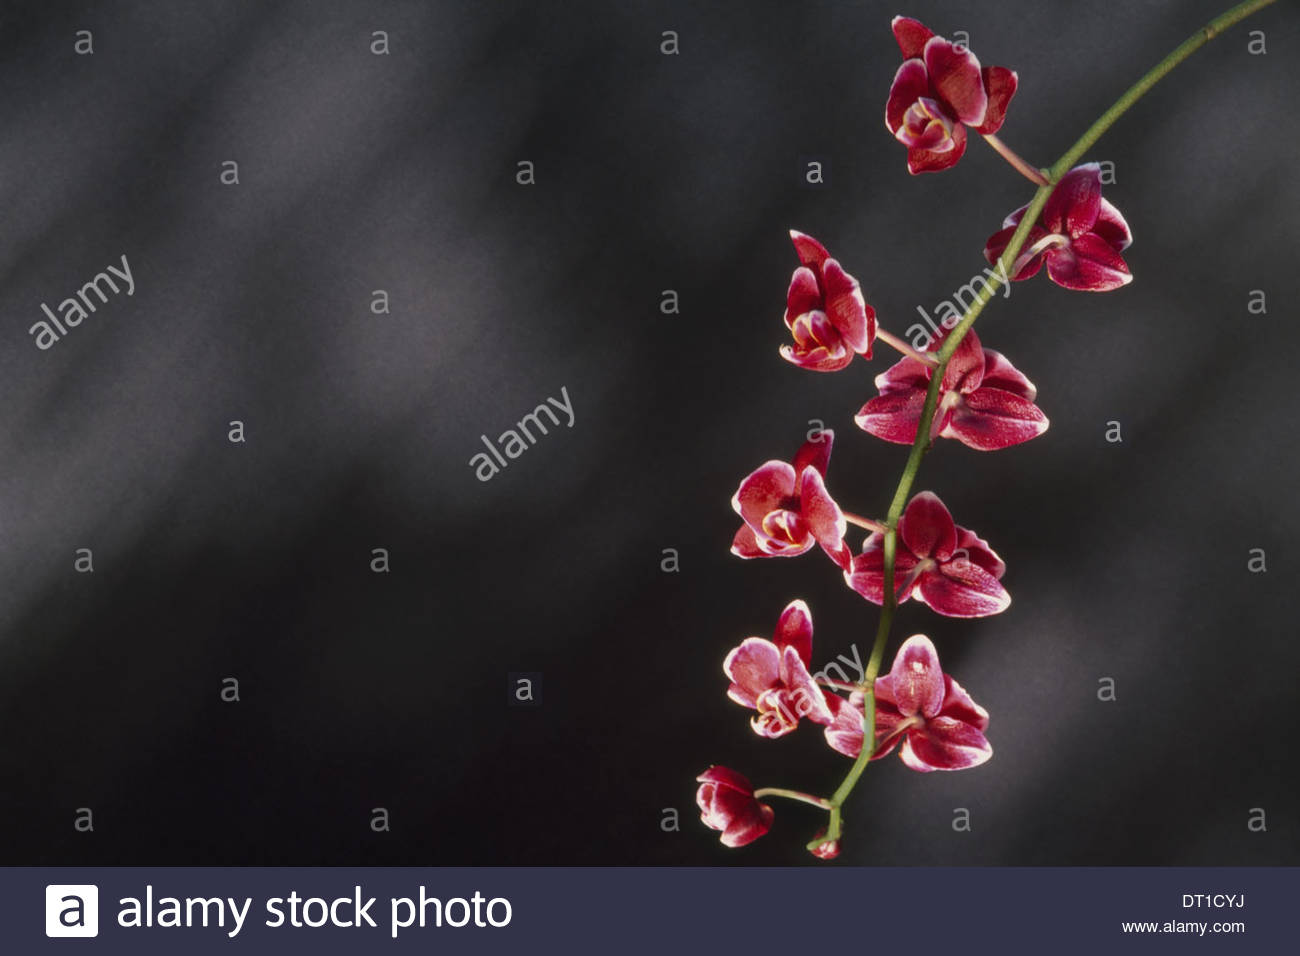 Orchid Phalaenopsis hybrid with small pink flowers - Stock Image